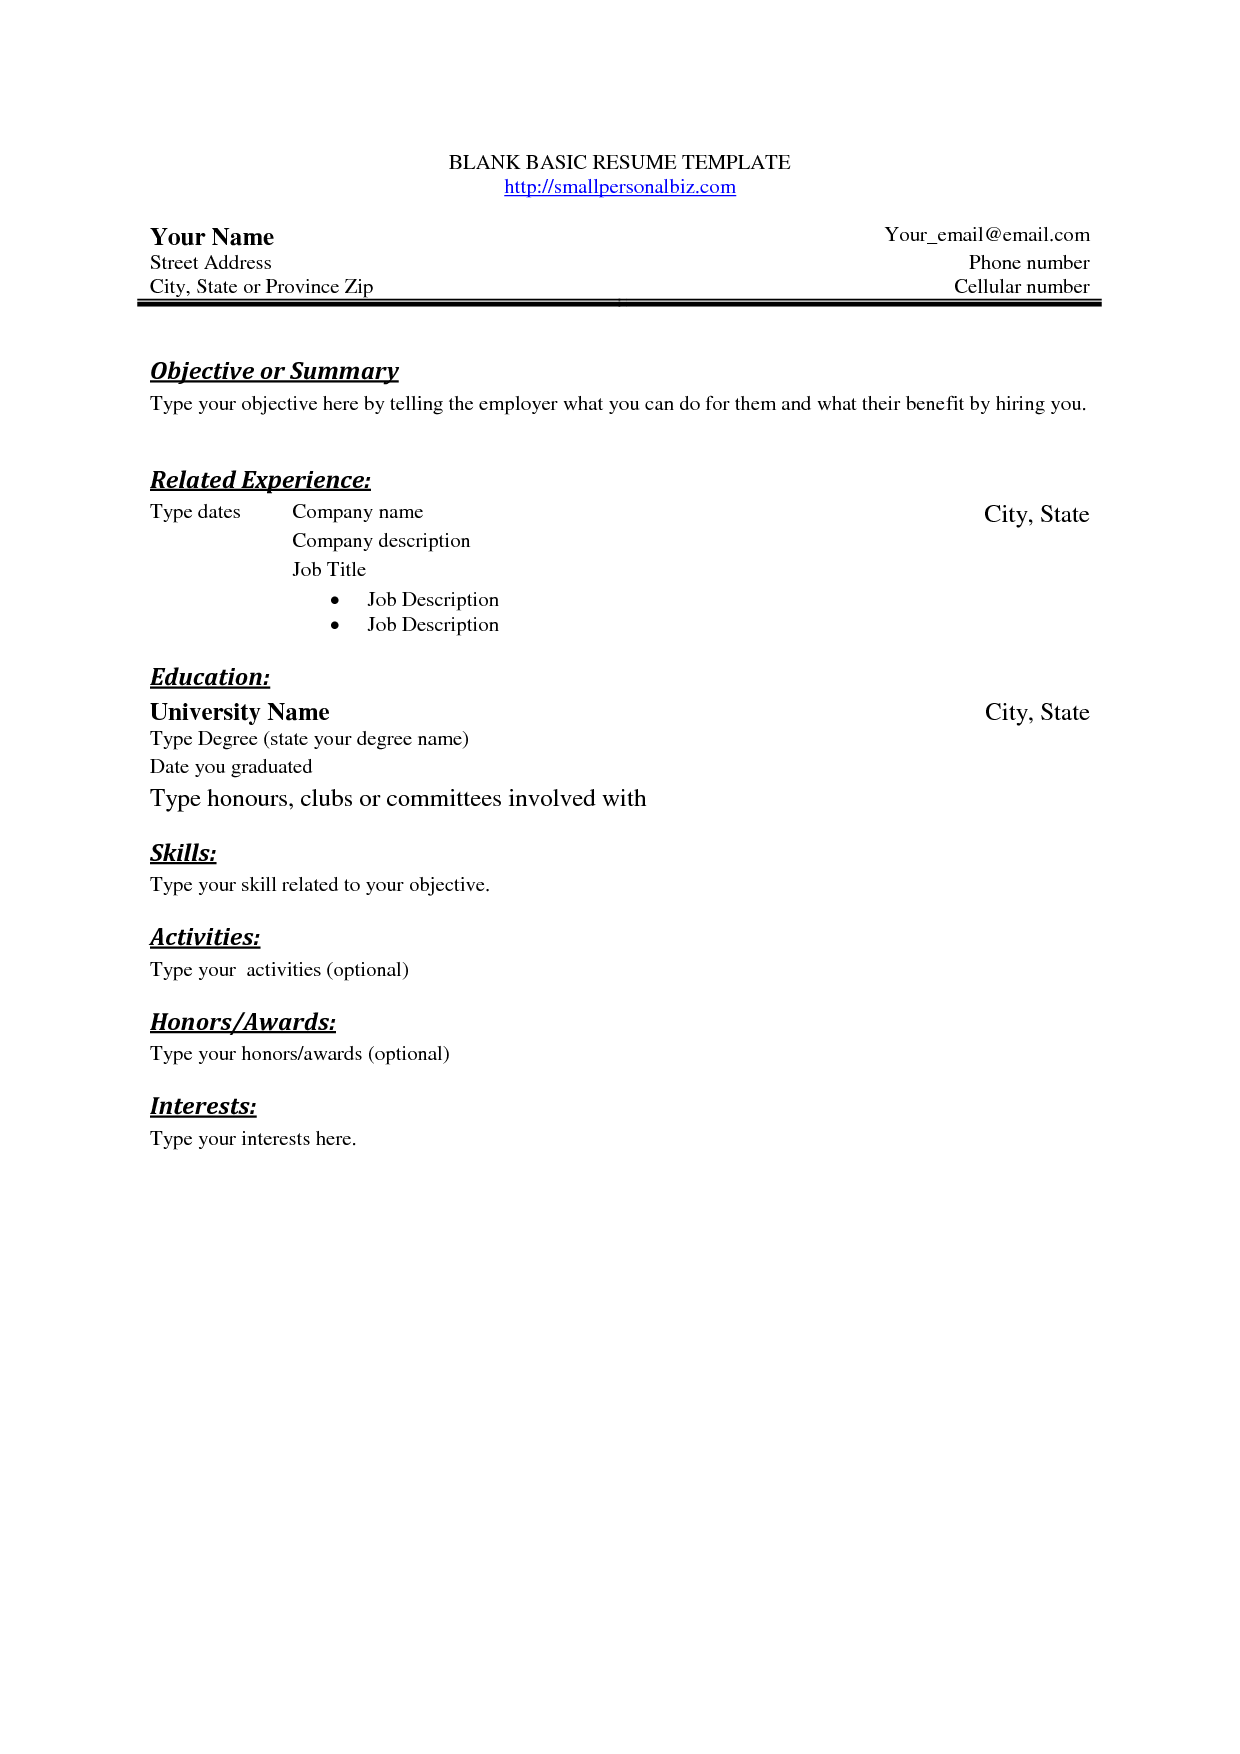 stylist and luxury simple resume layout 10 free basic blank resume template